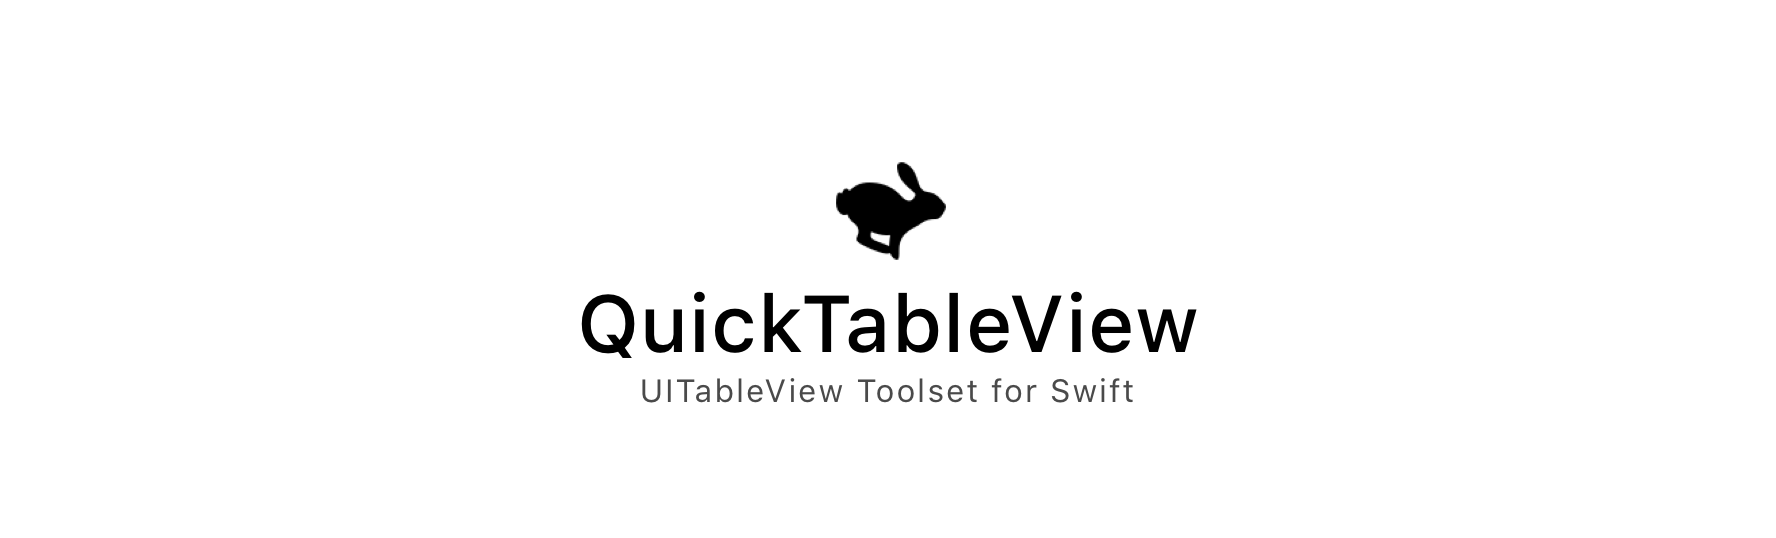 QuickTableView